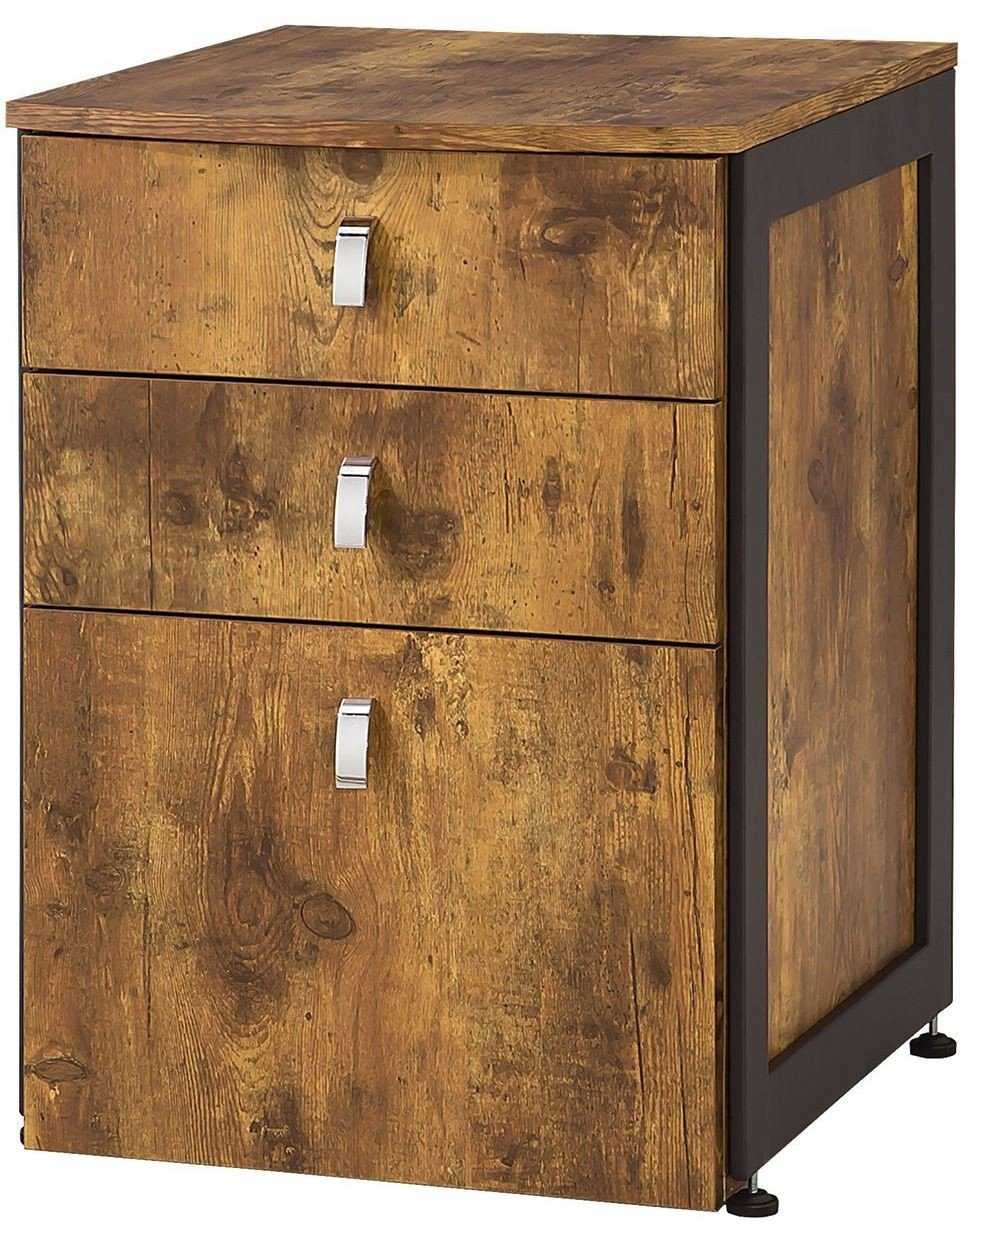 Estrella 3-Drawer File Cabinet  Antique Nutmeg and Gunmetal by Coaster Home Furnishings